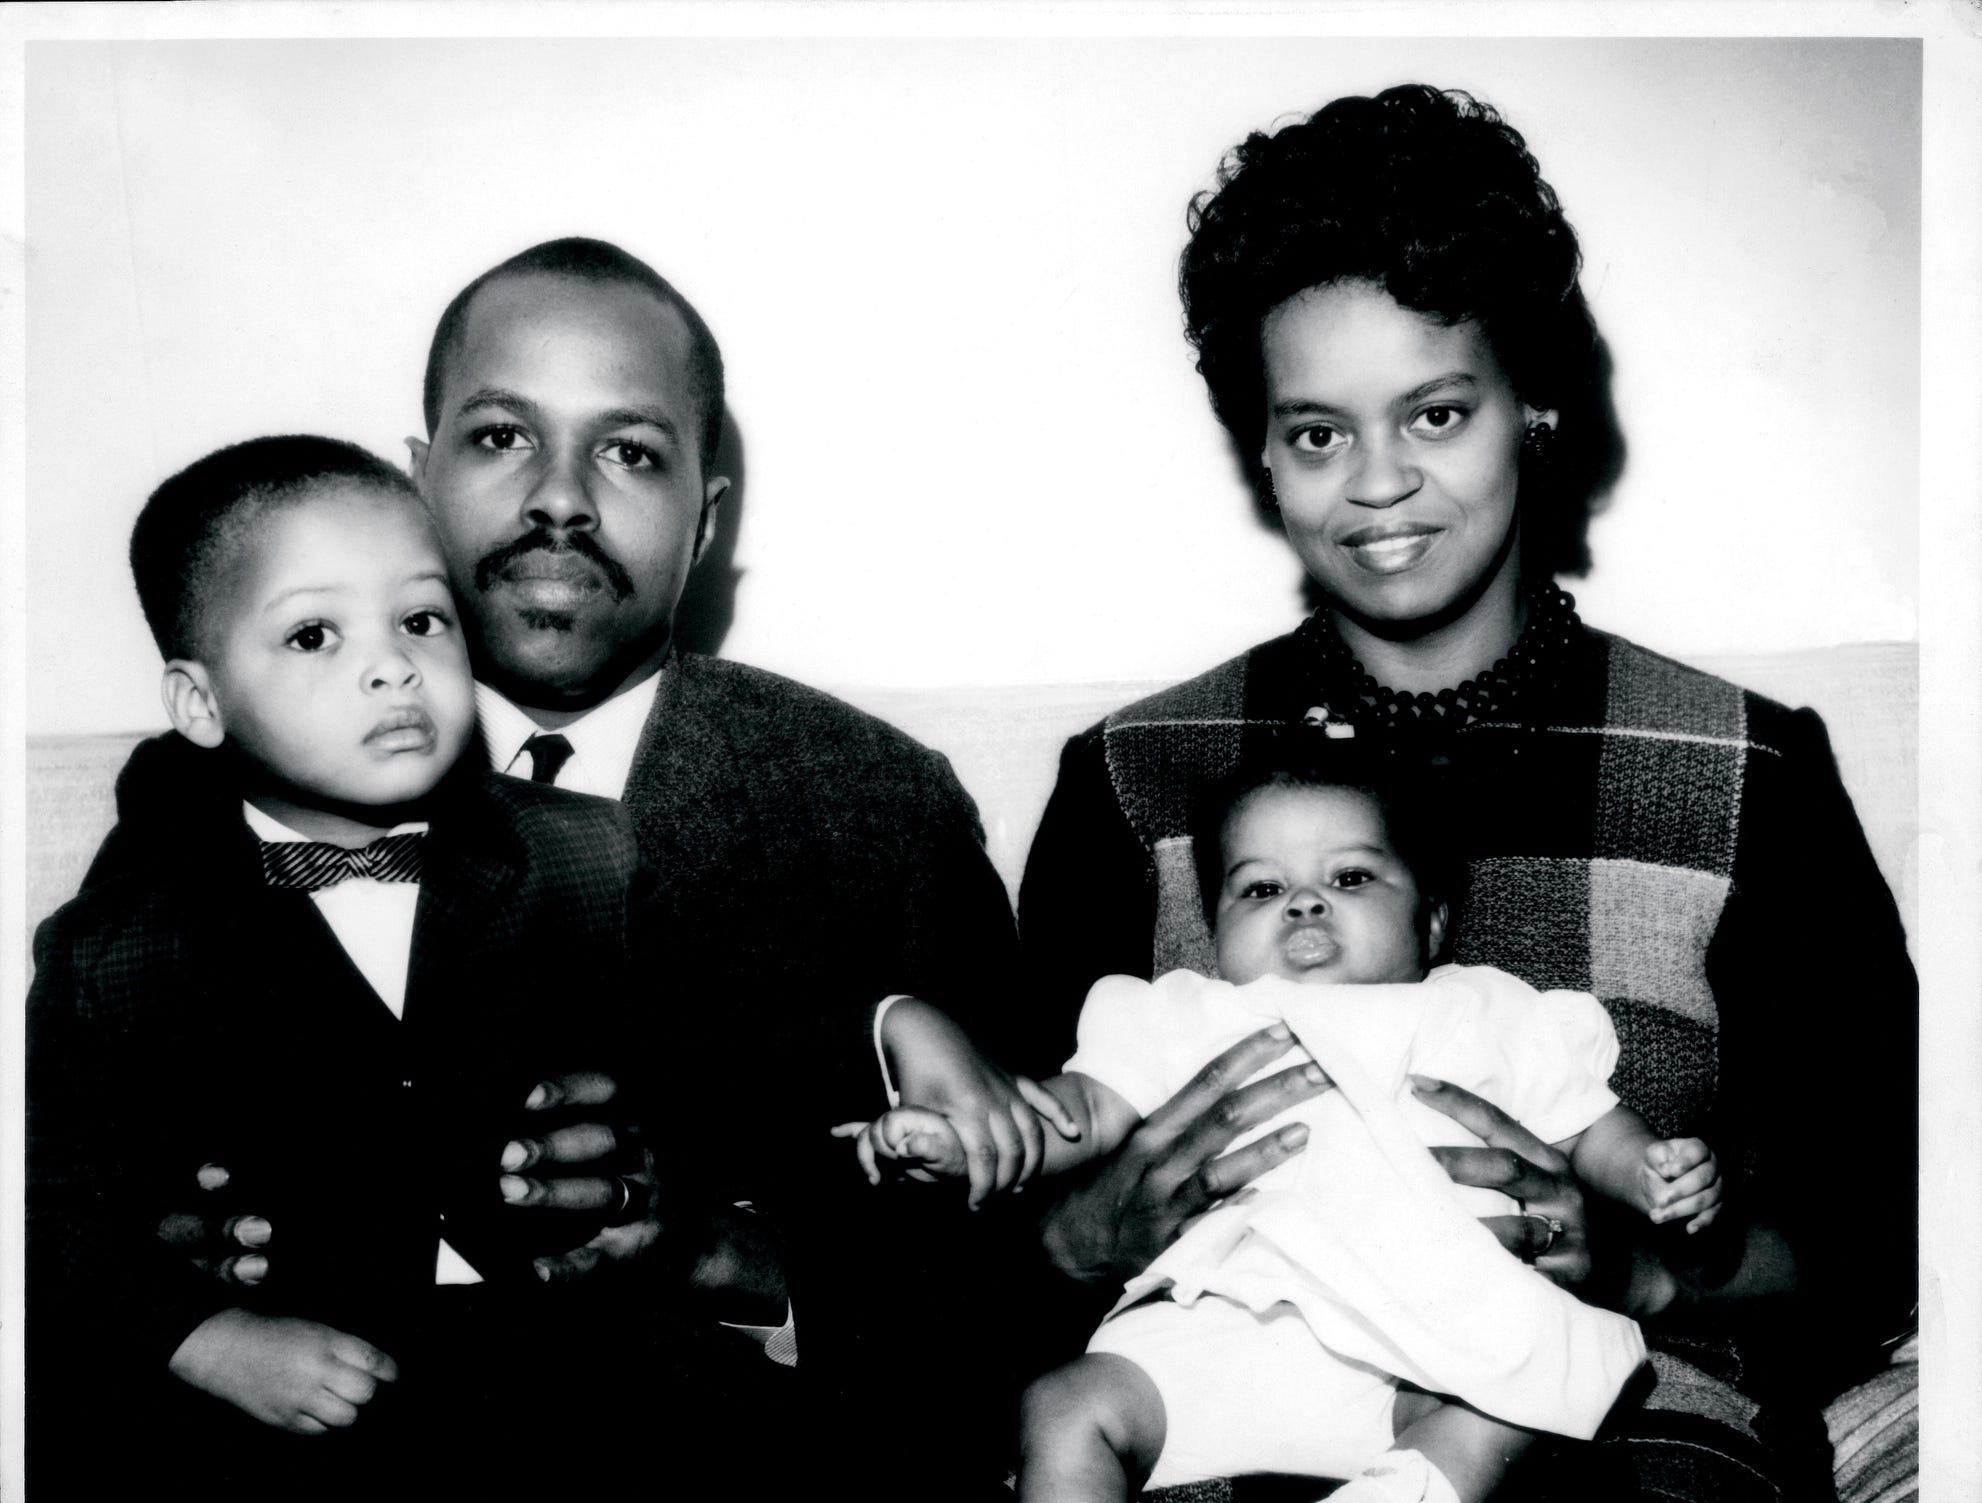 Michelle Obama as a child to go with Susan Page's Tuesday cover story, 5/31/2012.  [Via MerlinFTP Drop]